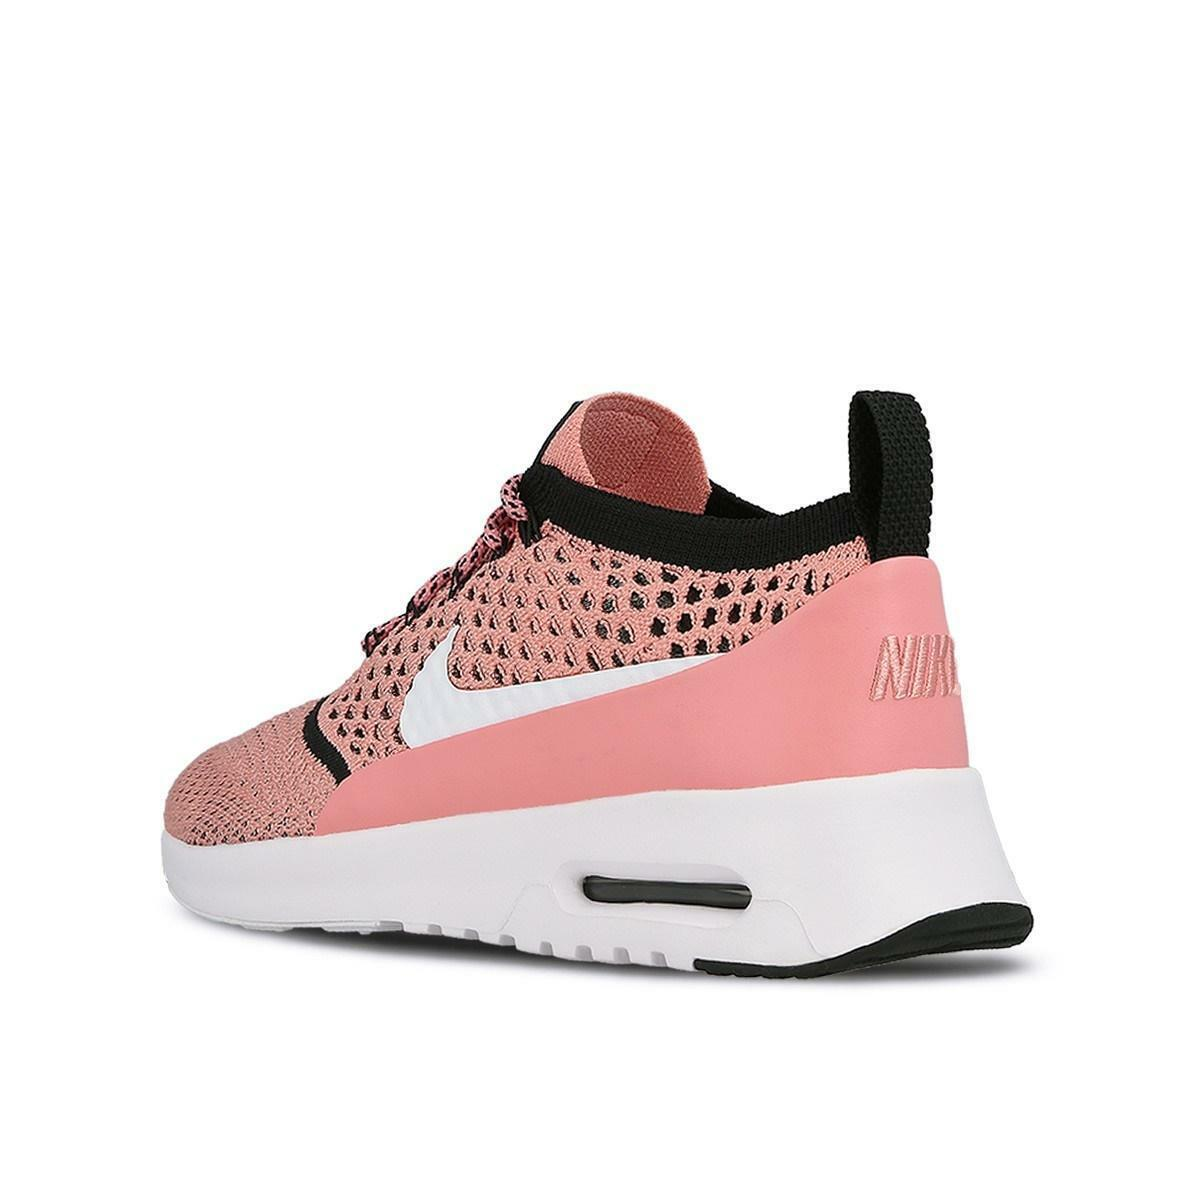 Womens NIKE AIR MAX THEA ULTRA ULTRA ULTRA FK Bright Melon Trainers 881175 800 c2c581